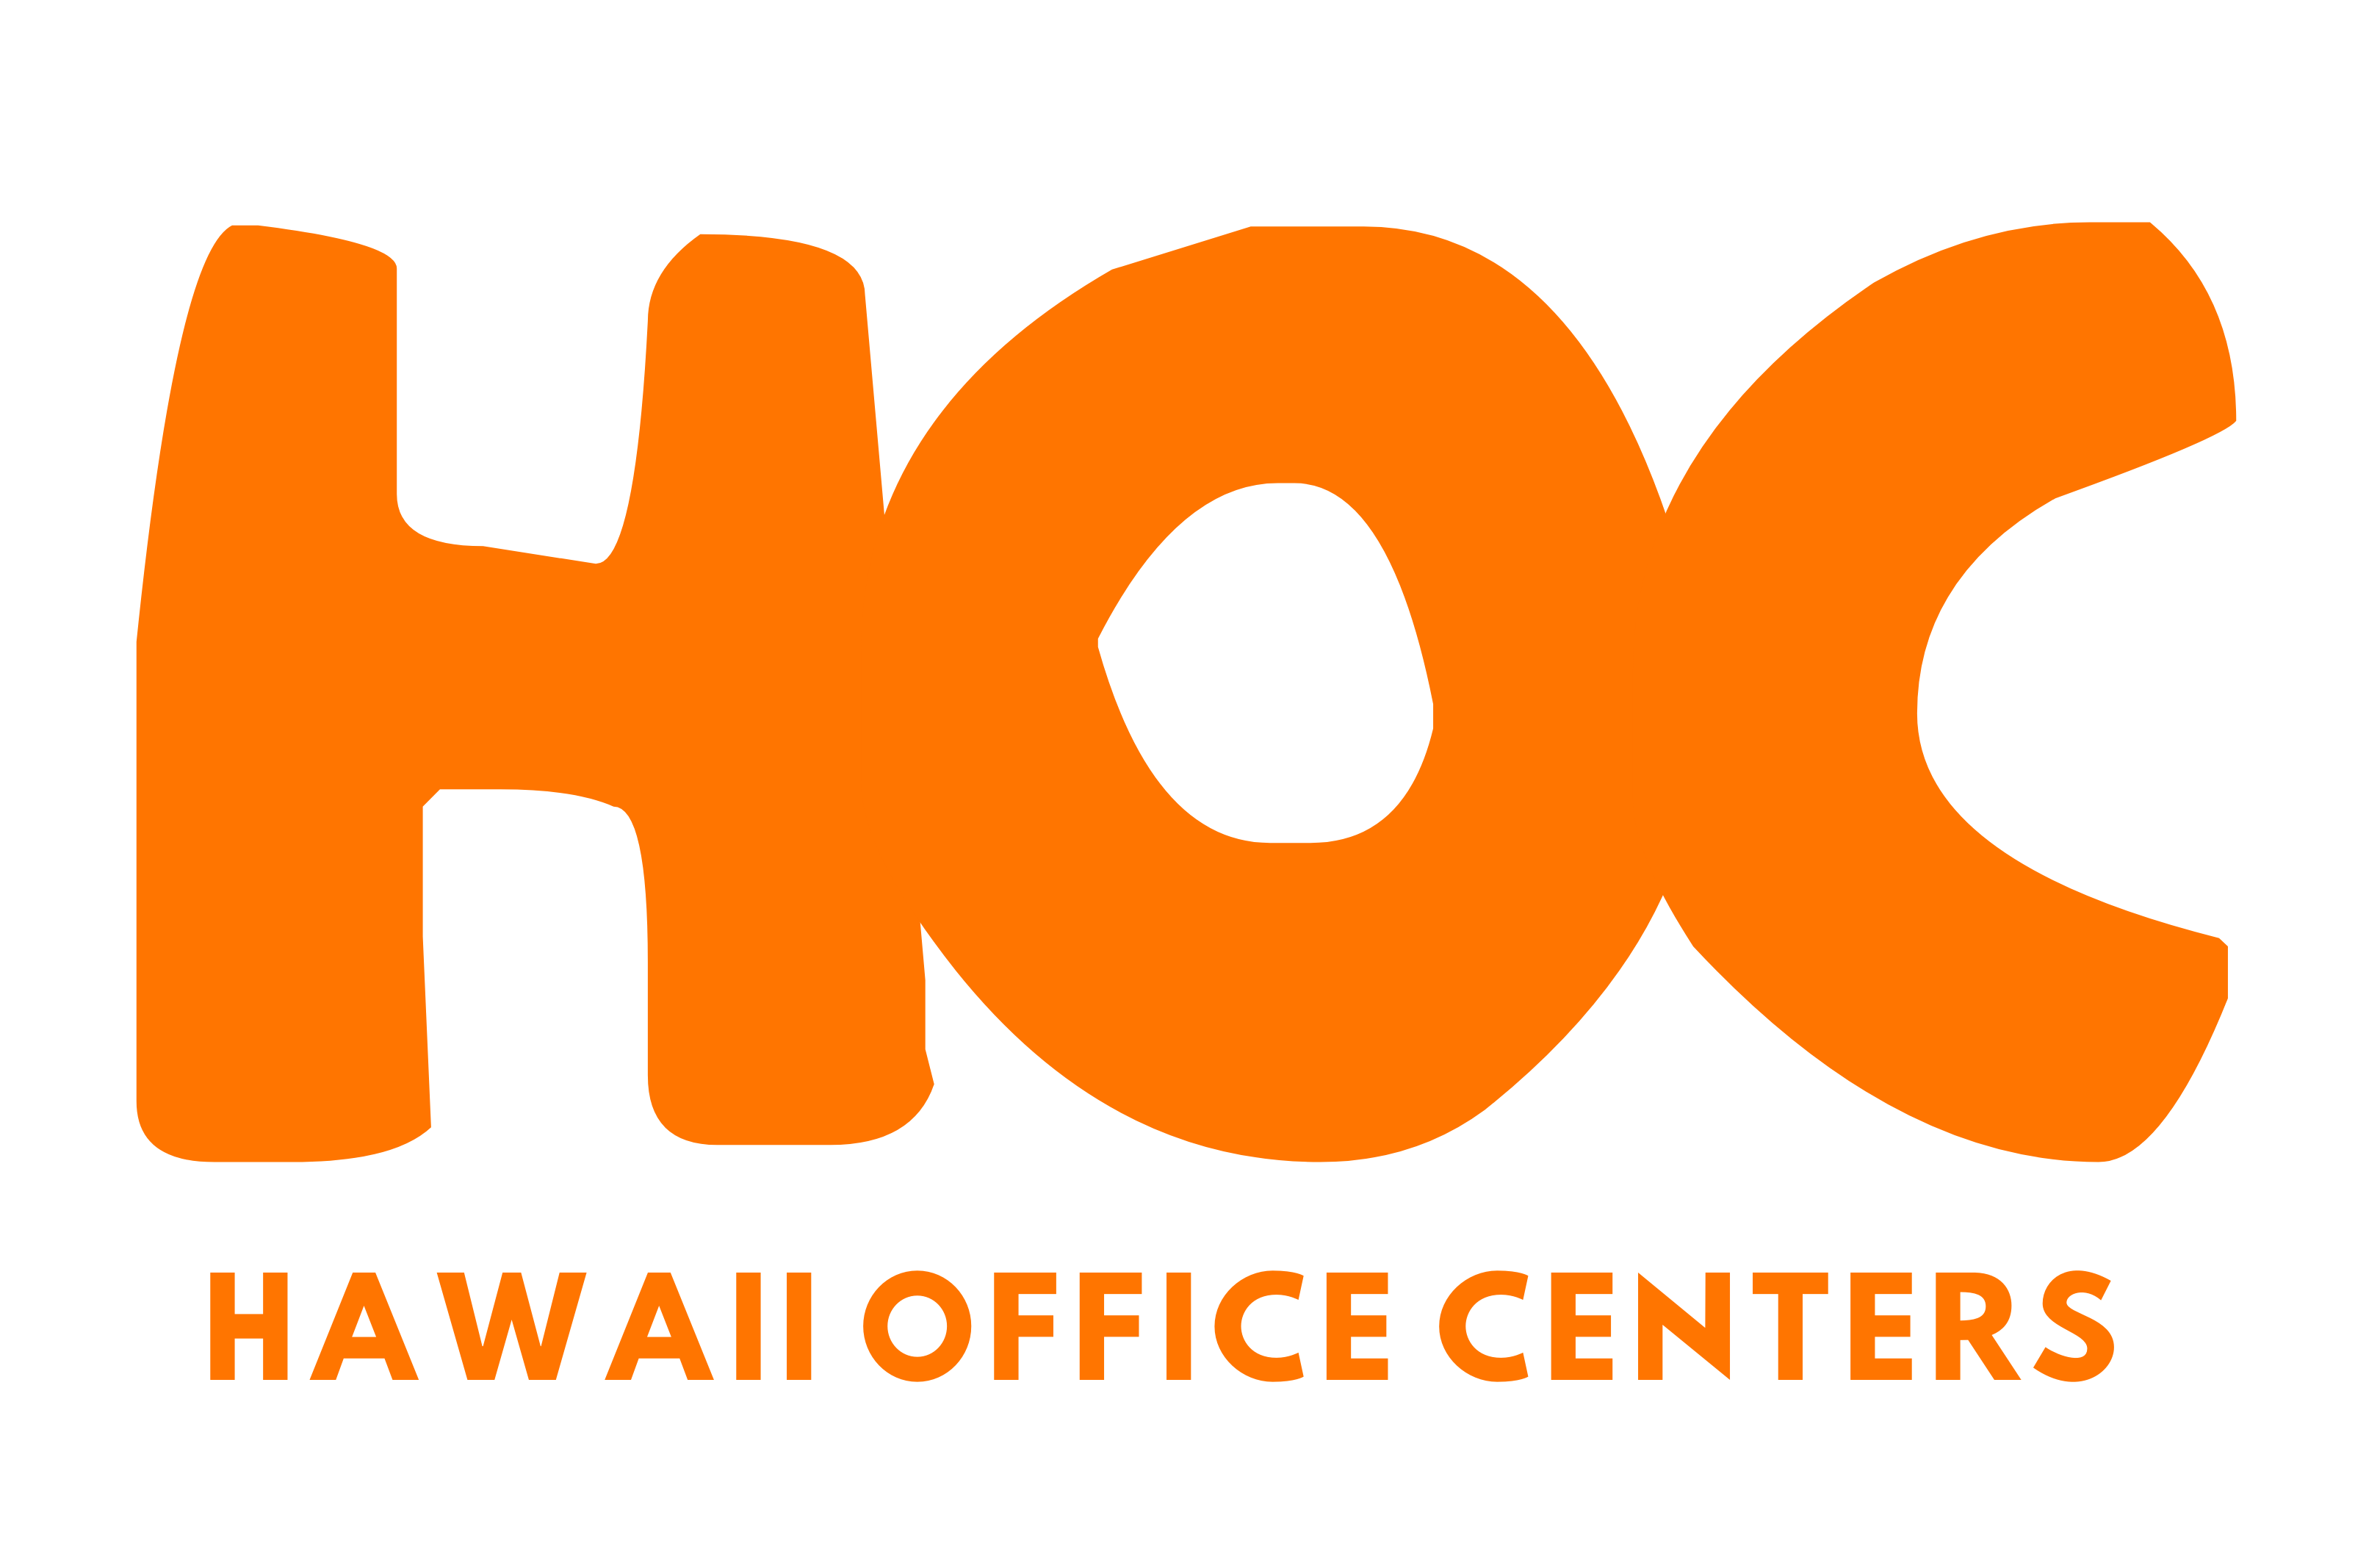 HAWAII OFFICE CENTERS